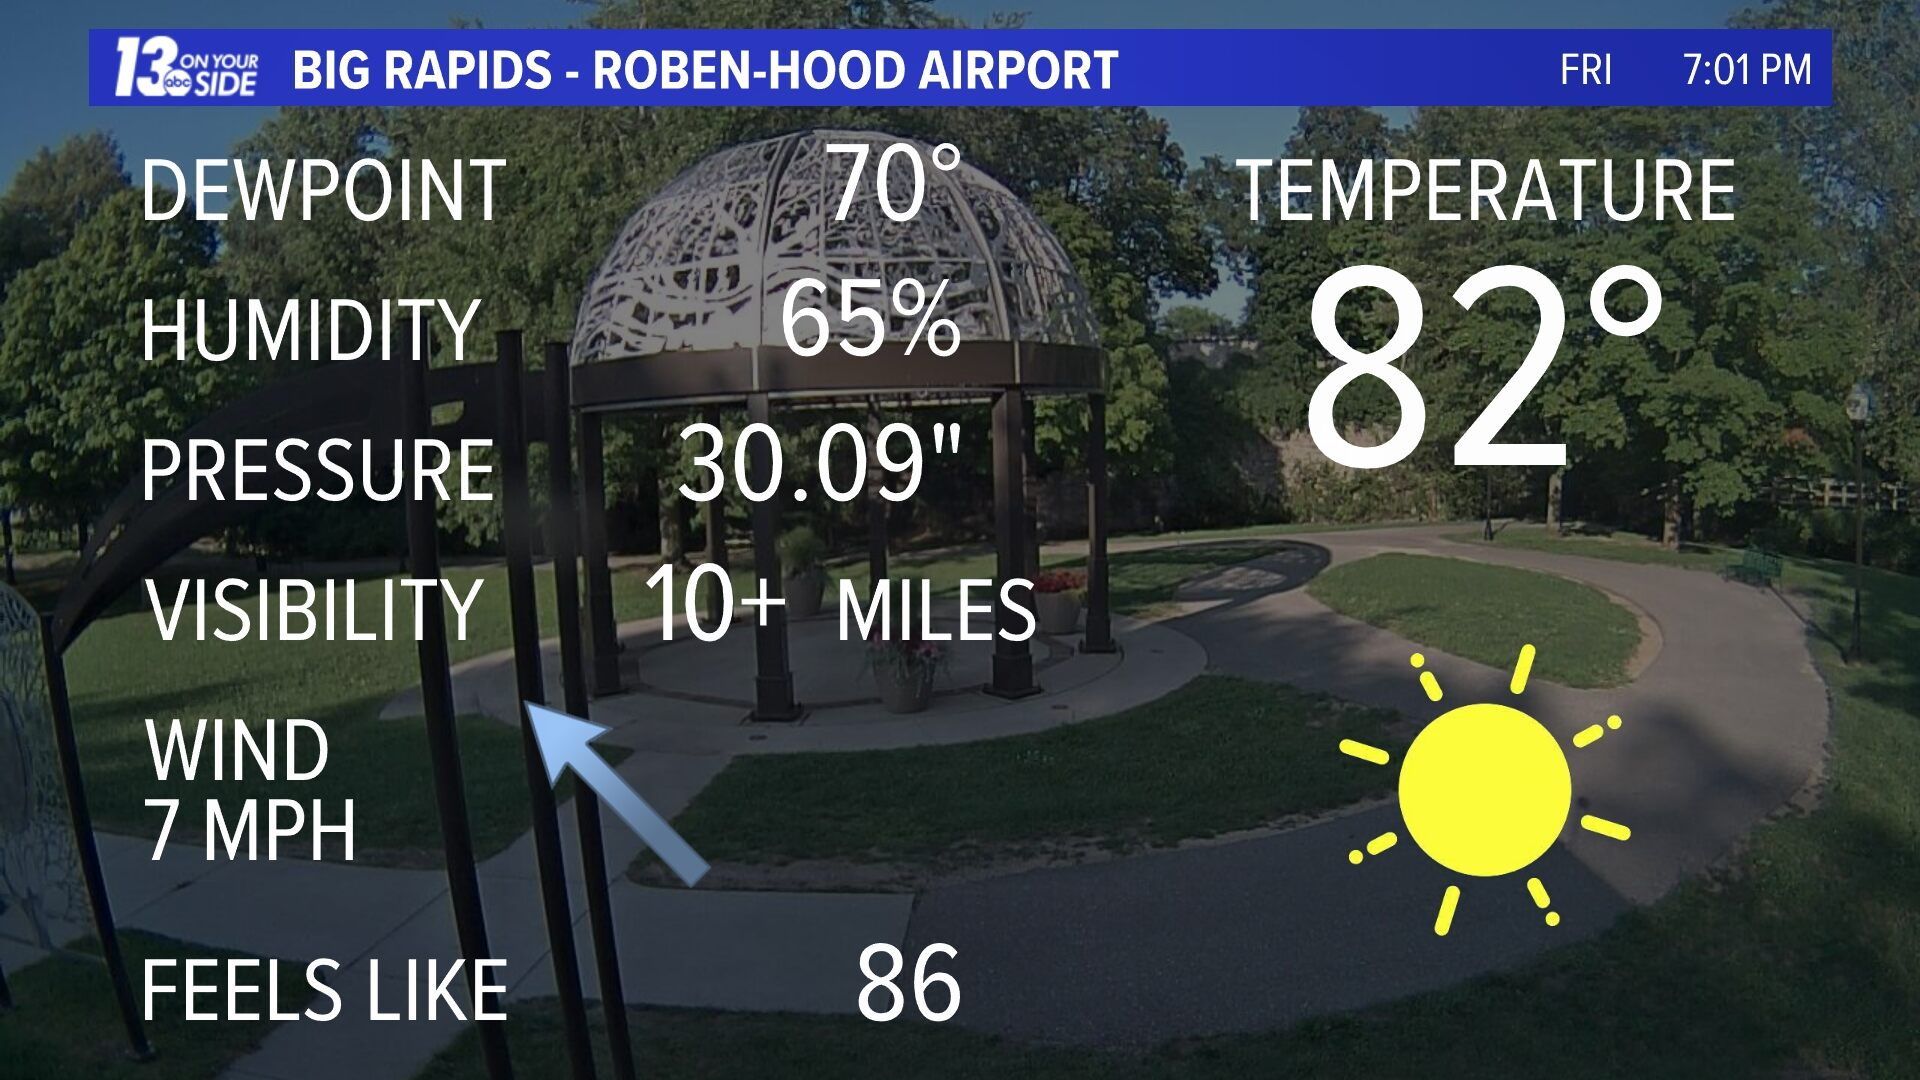 Big Rapids - Roben-Hood Airport